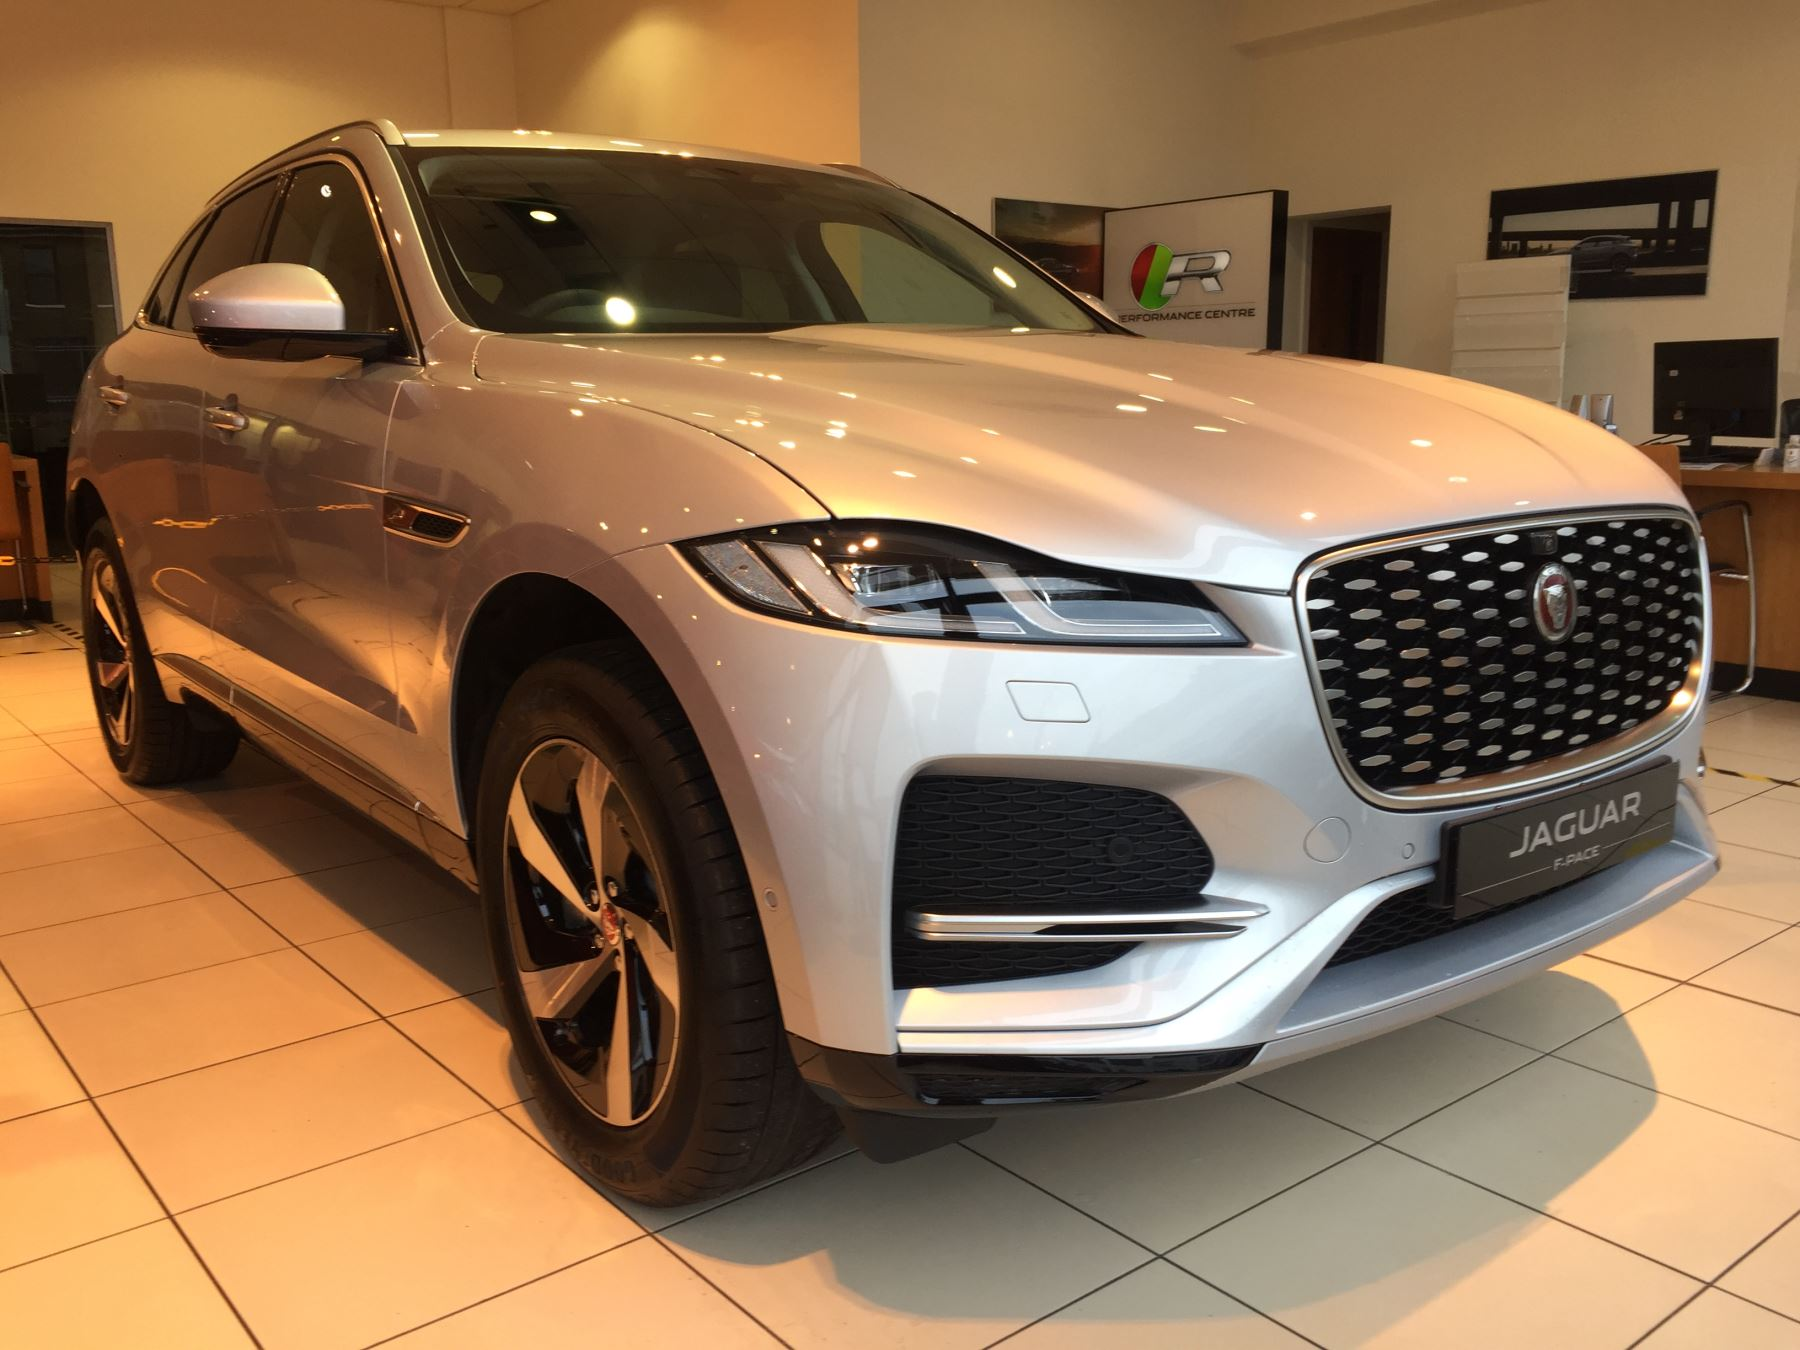 Jaguar F-PACE All models available for early delivery.  2.0 Diesel Automatic 5 door 4x4